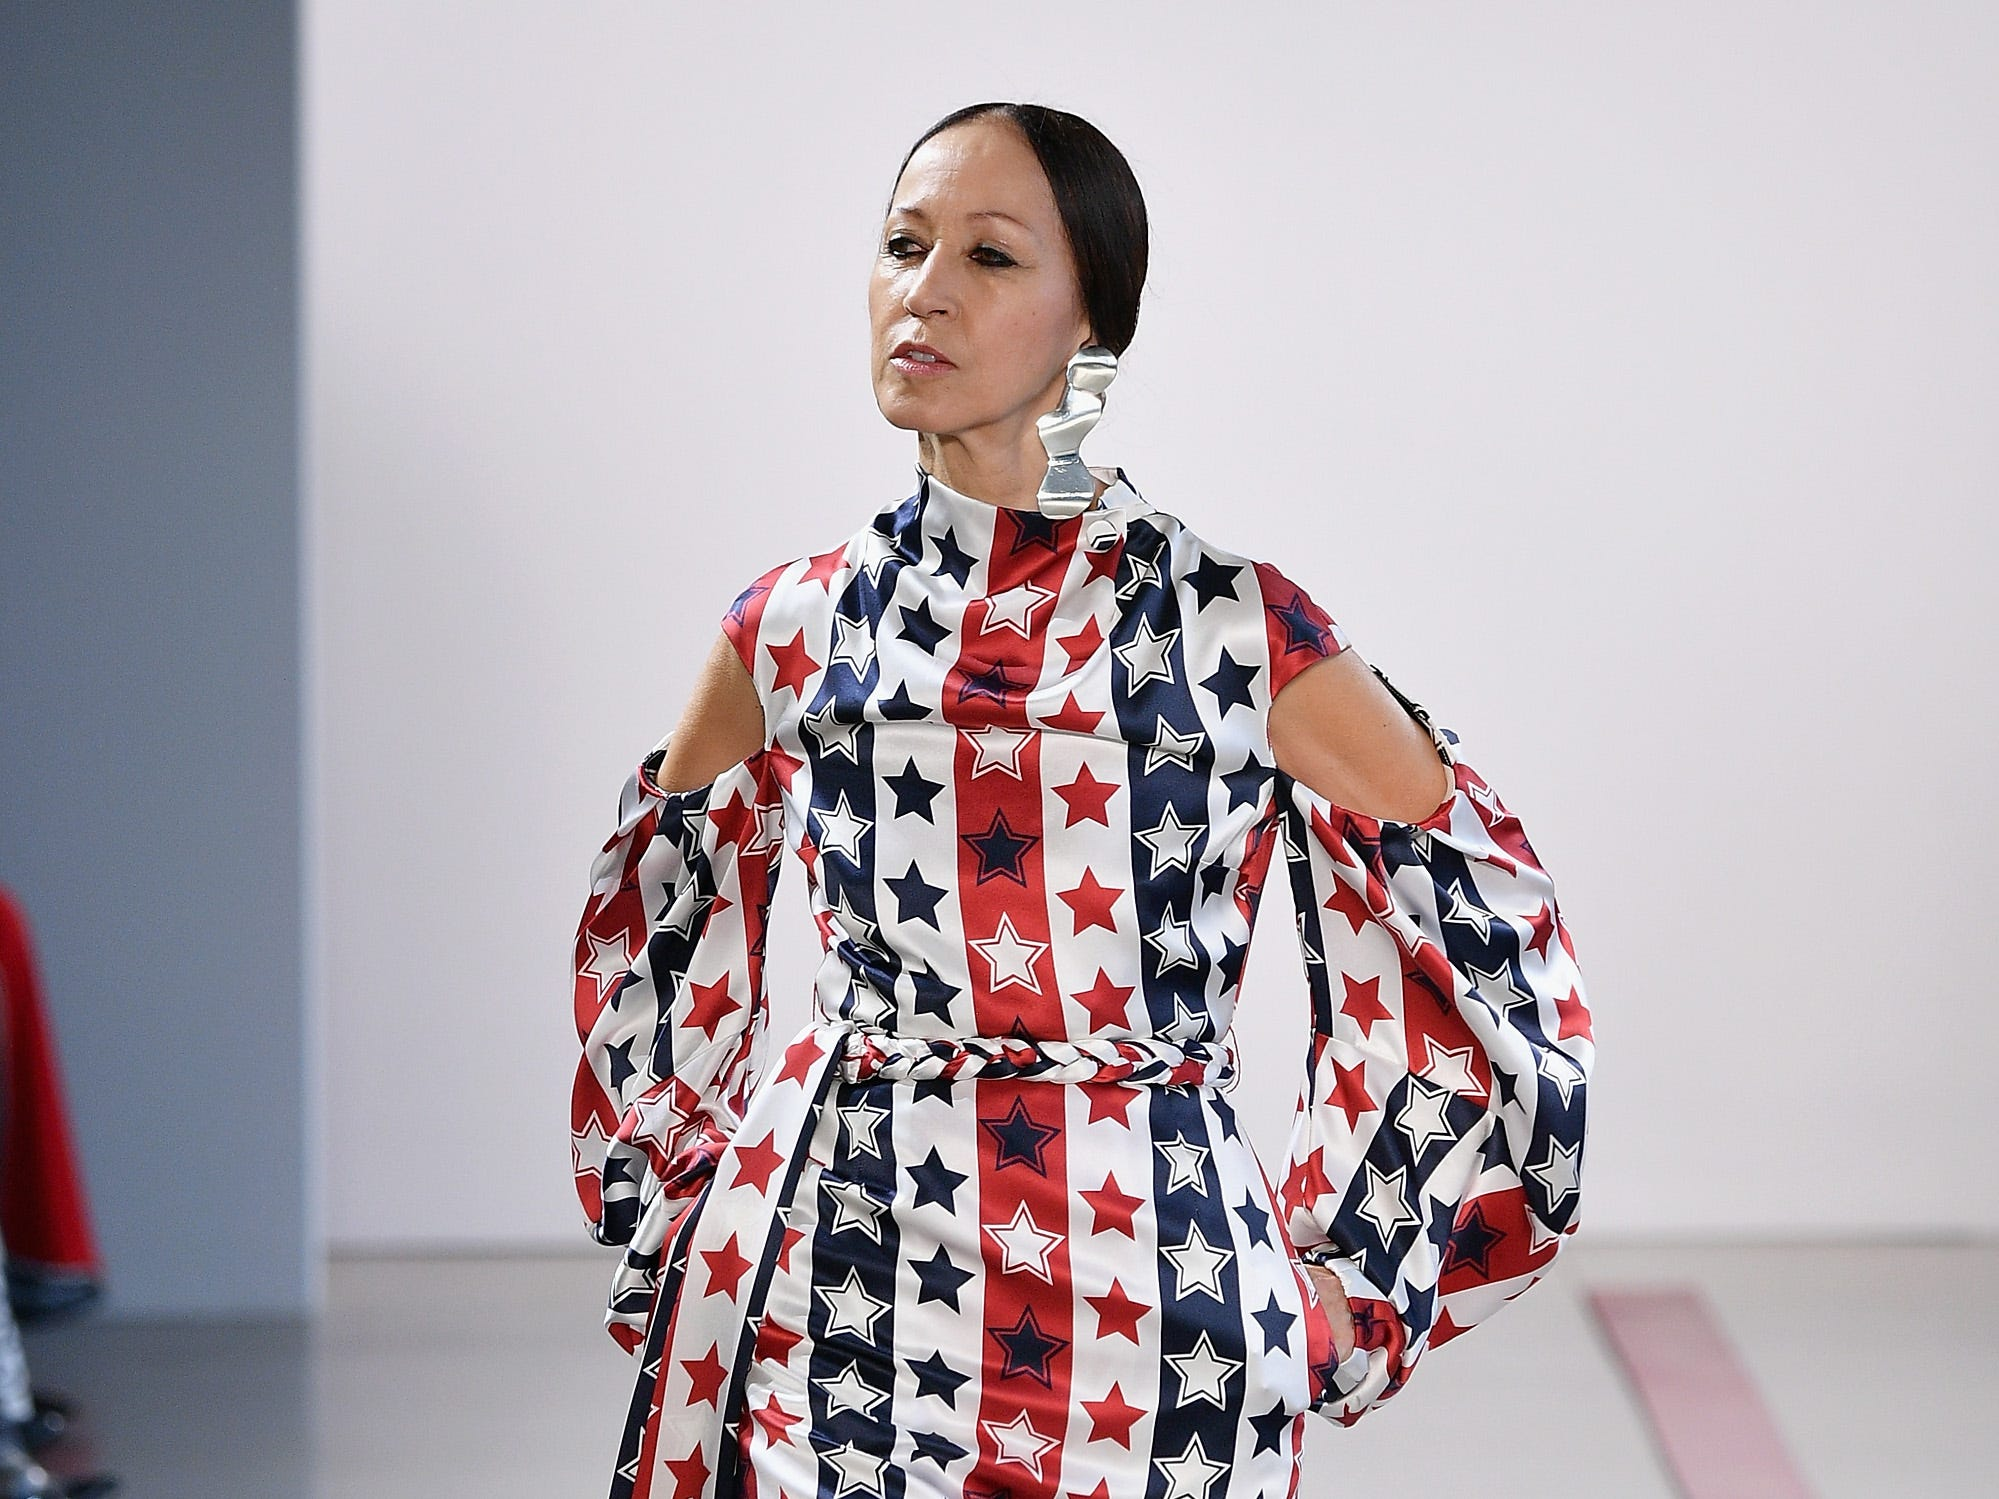 NEW YORK, NY - FEBRUARY 08: Model Pat Cleveland walks the runway for the Hellessy fashion show during New York Fashion Week: The Shows at Gallery II at Spring Studios on February 8, 2019 in New York City.  (Photo by Dia Dipasupil/Getty Images for NYFW: The Shows) ORG XMIT: 775289362 ORIG FILE ID: 1095539700